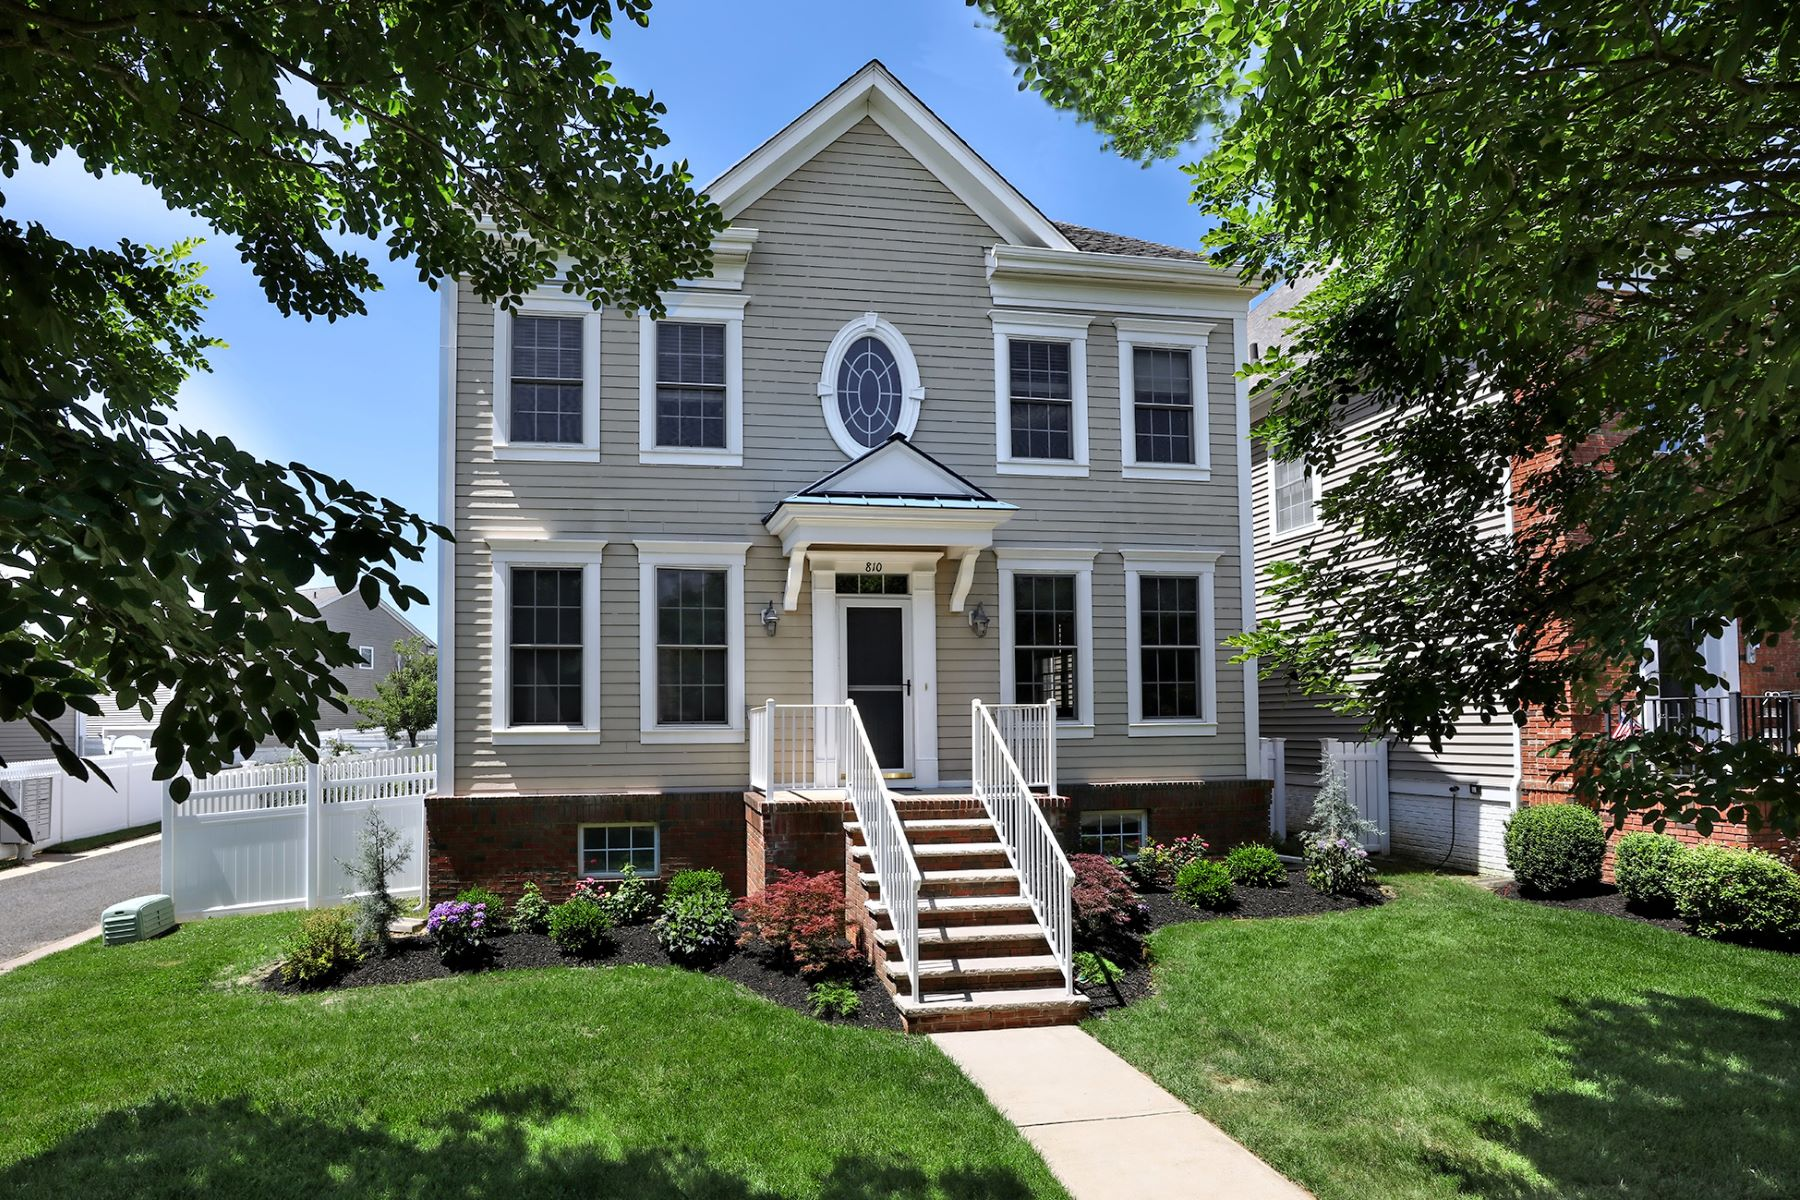 Property for Sale at More Than Beautiful and Practical...a True Home 810 Cypress Street, Robbinsville, New Jersey 08691 United States